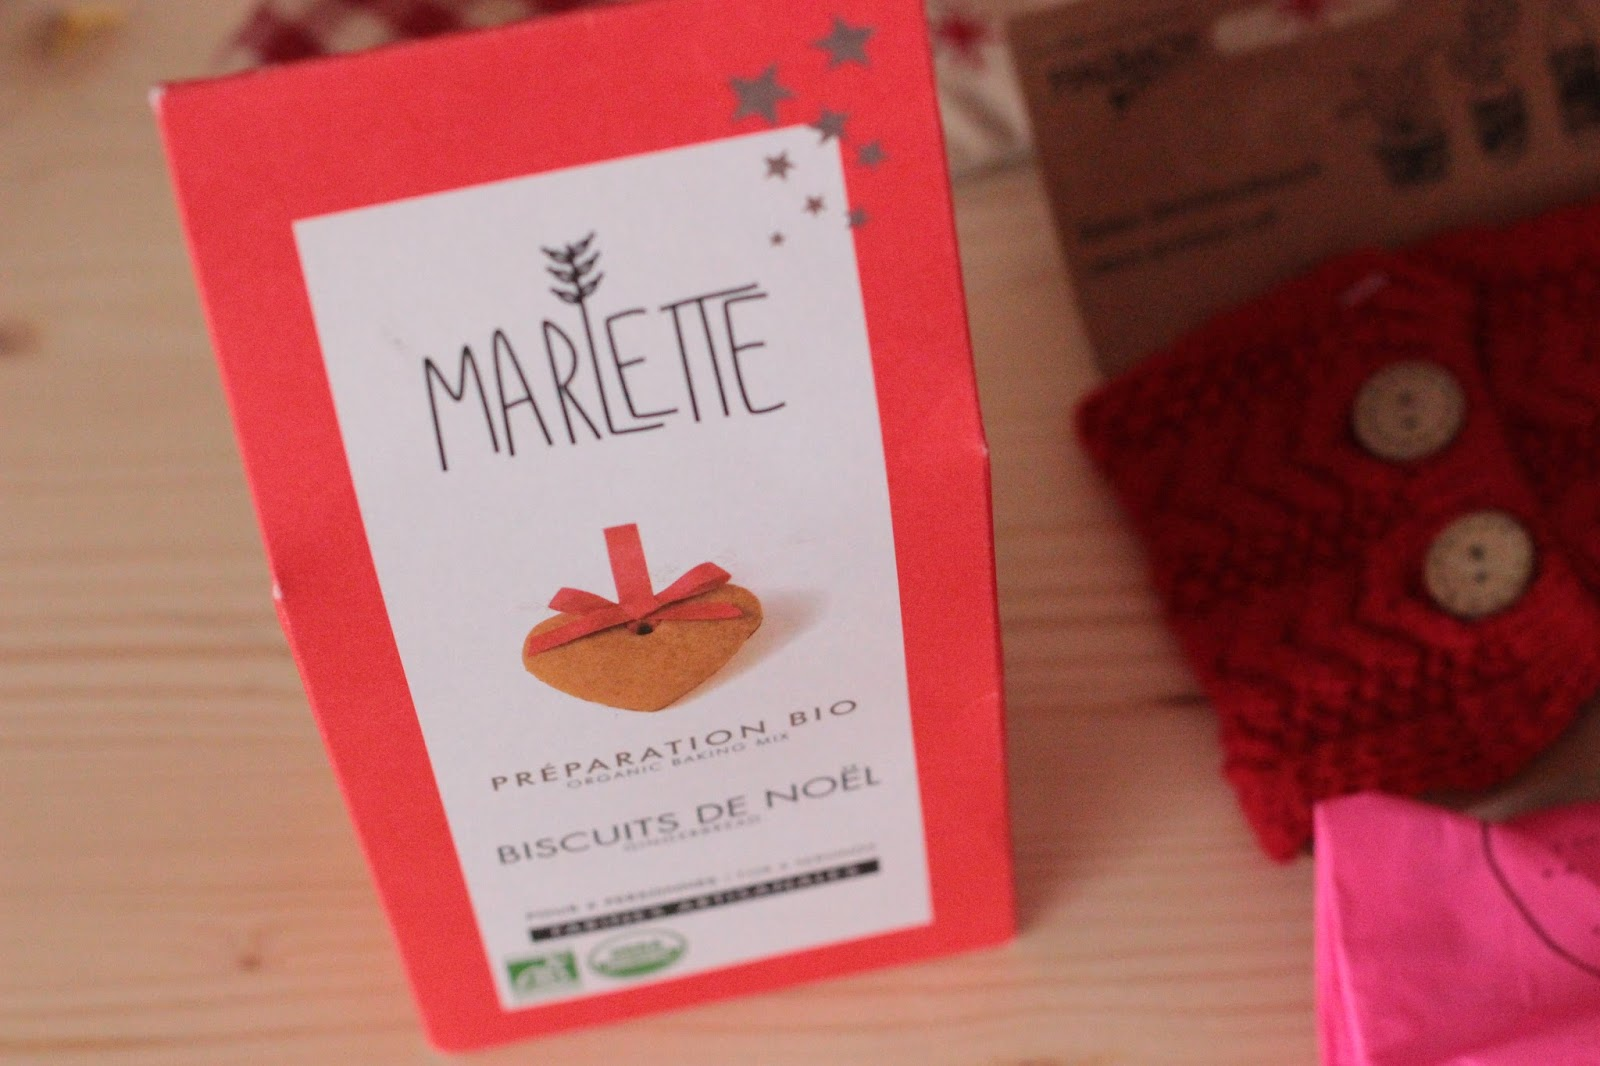 marlette gingembre